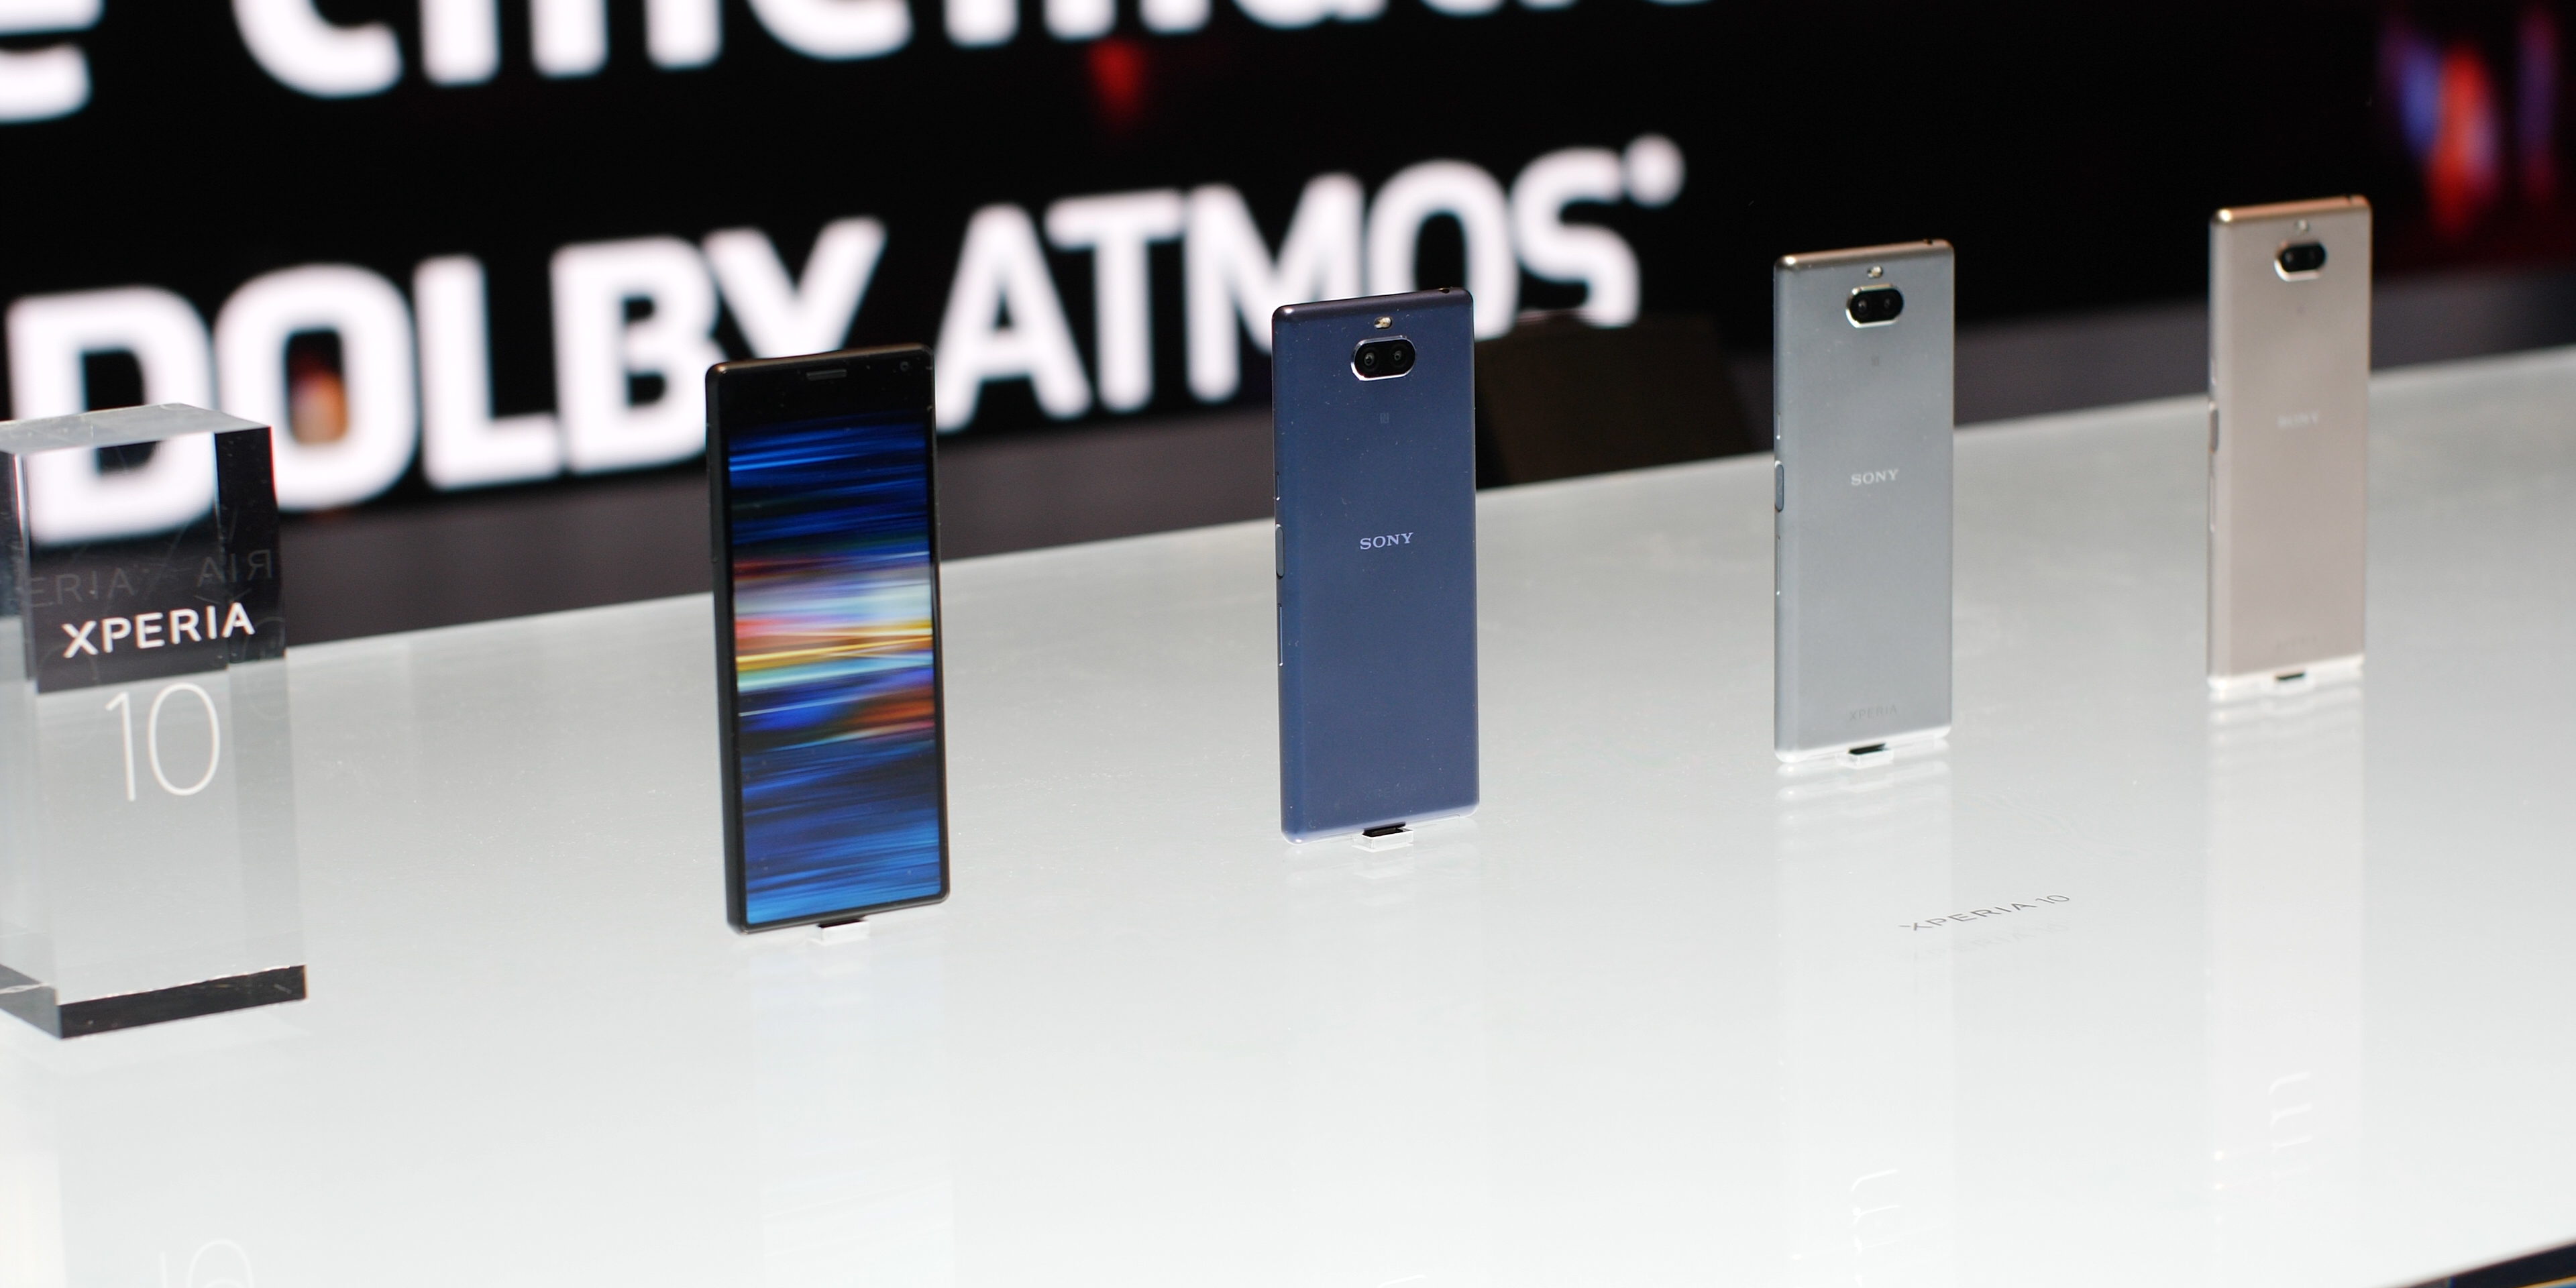 Sony Xperia 10 design and hardware